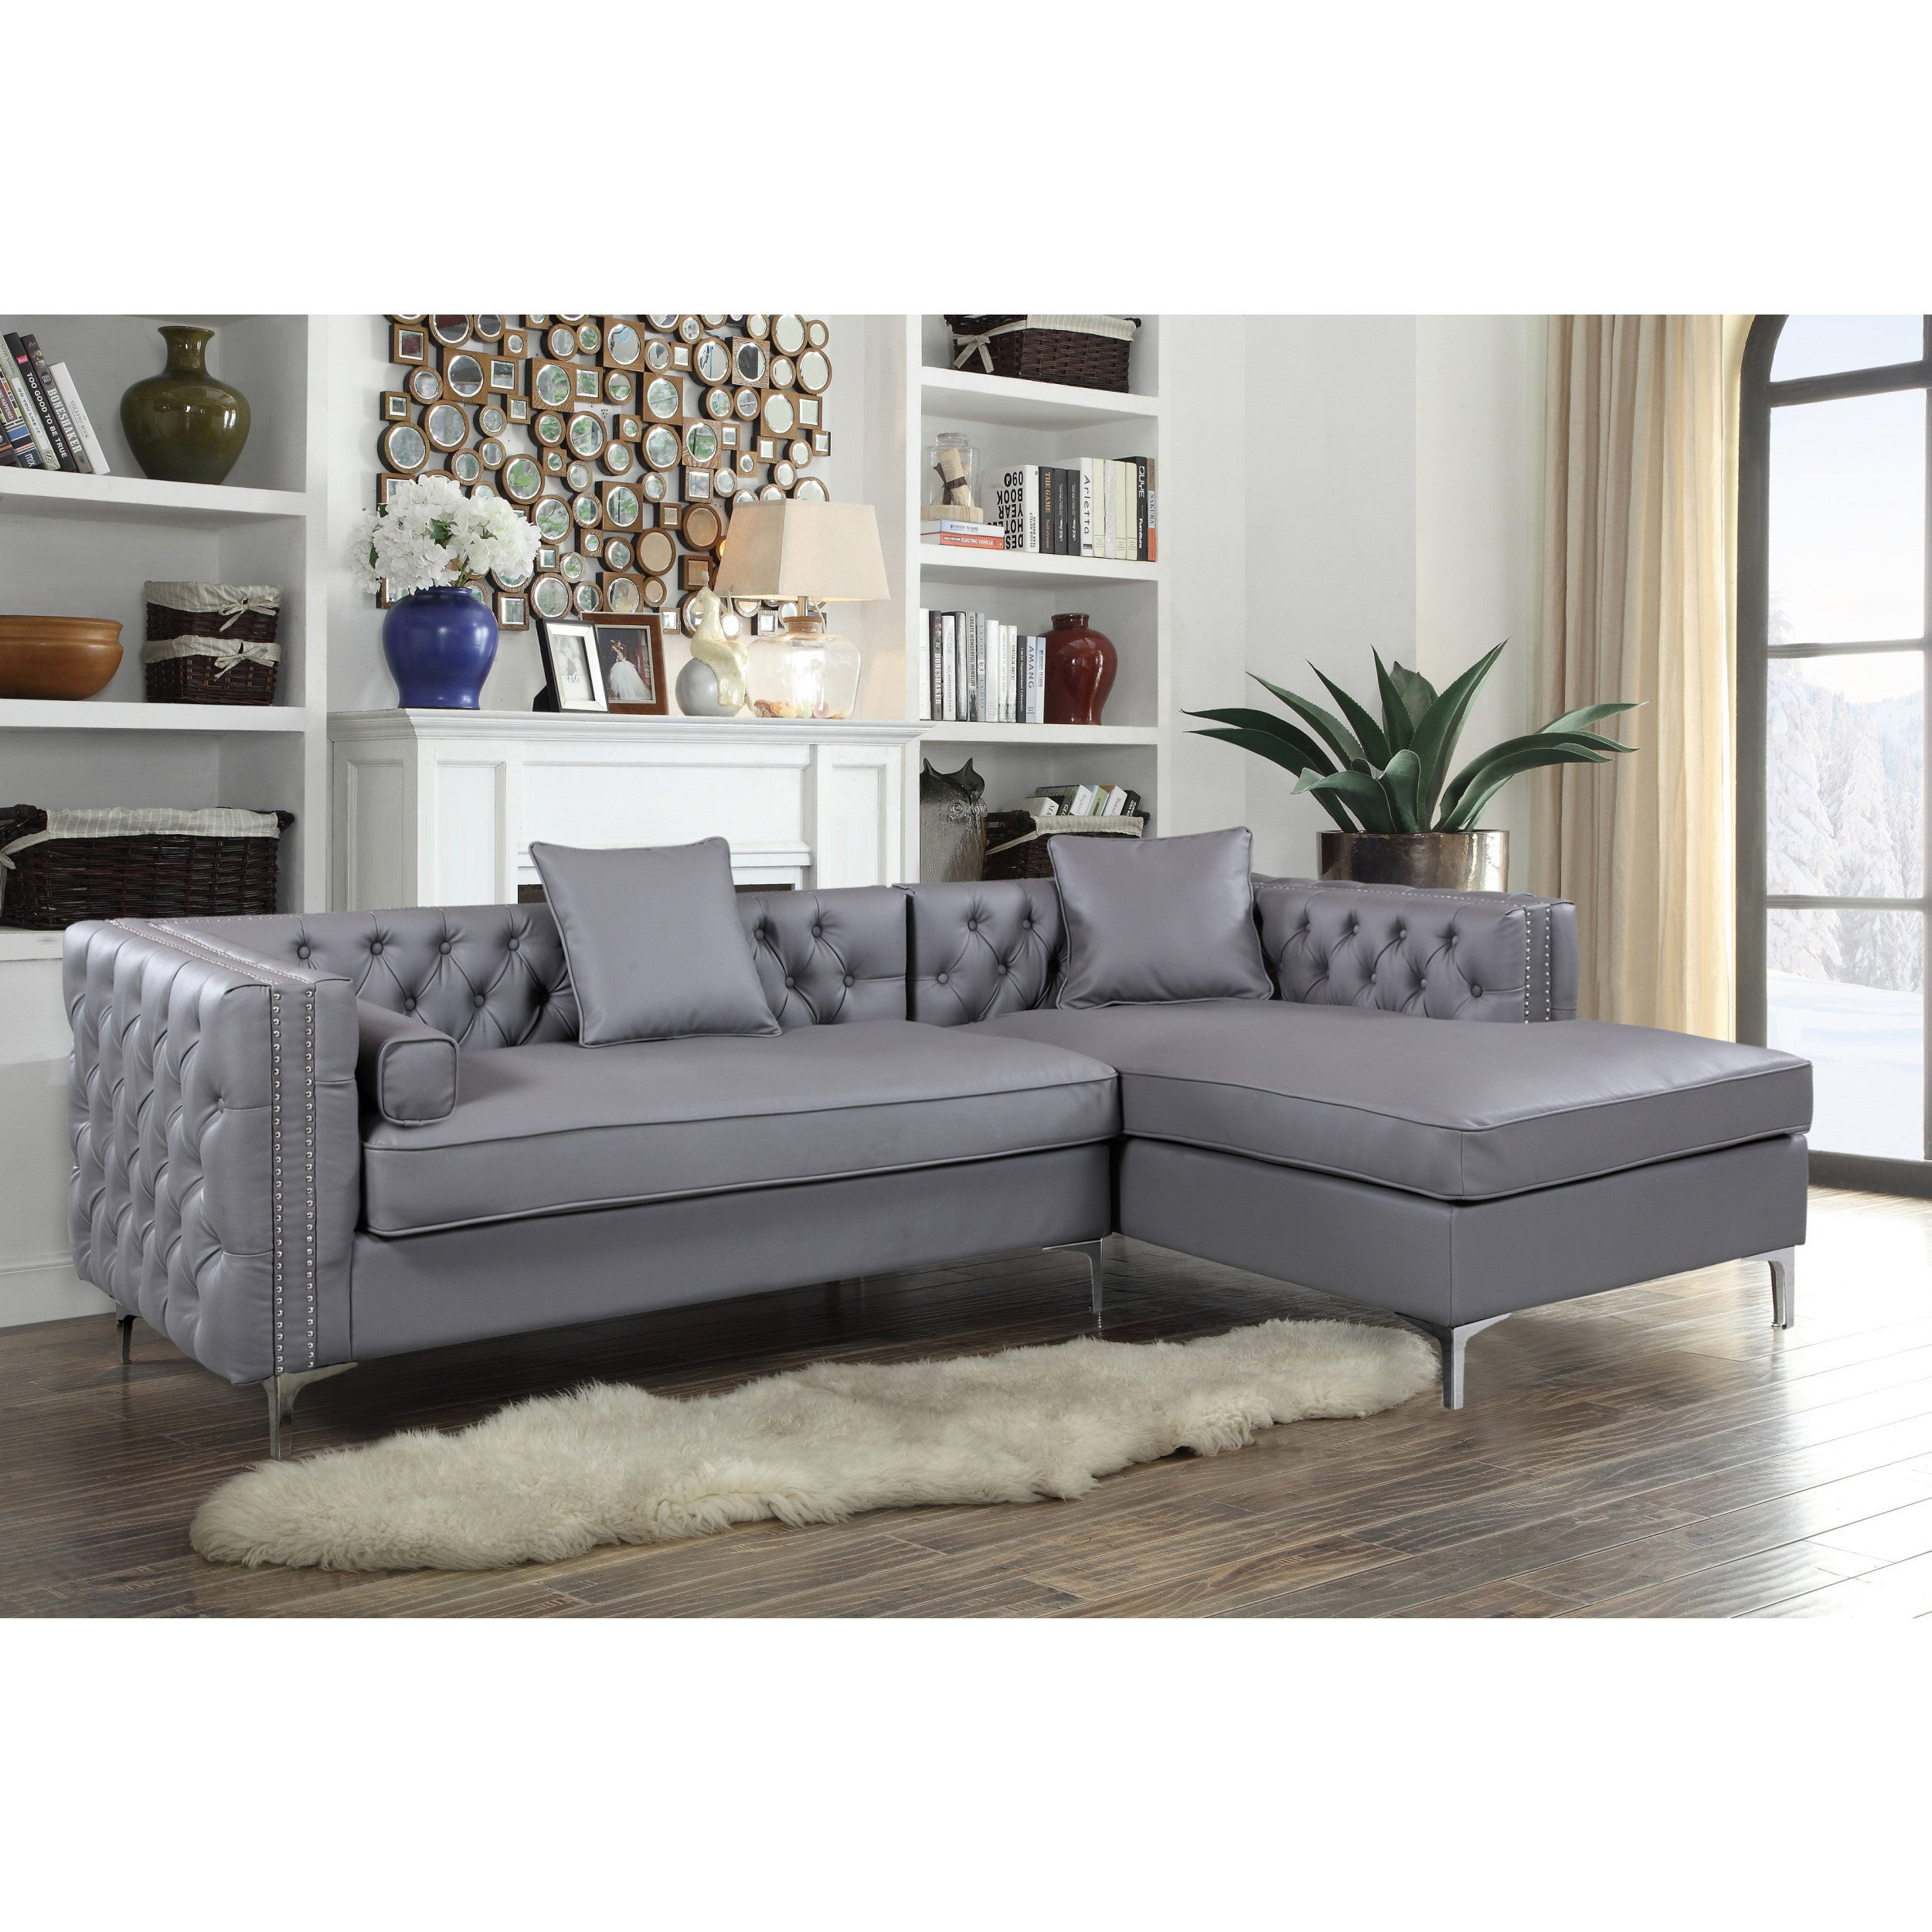 Shop chic home monet pu leather modern contemporary button tufted with silver nailhead trim right facing sectional sofa free shipping today